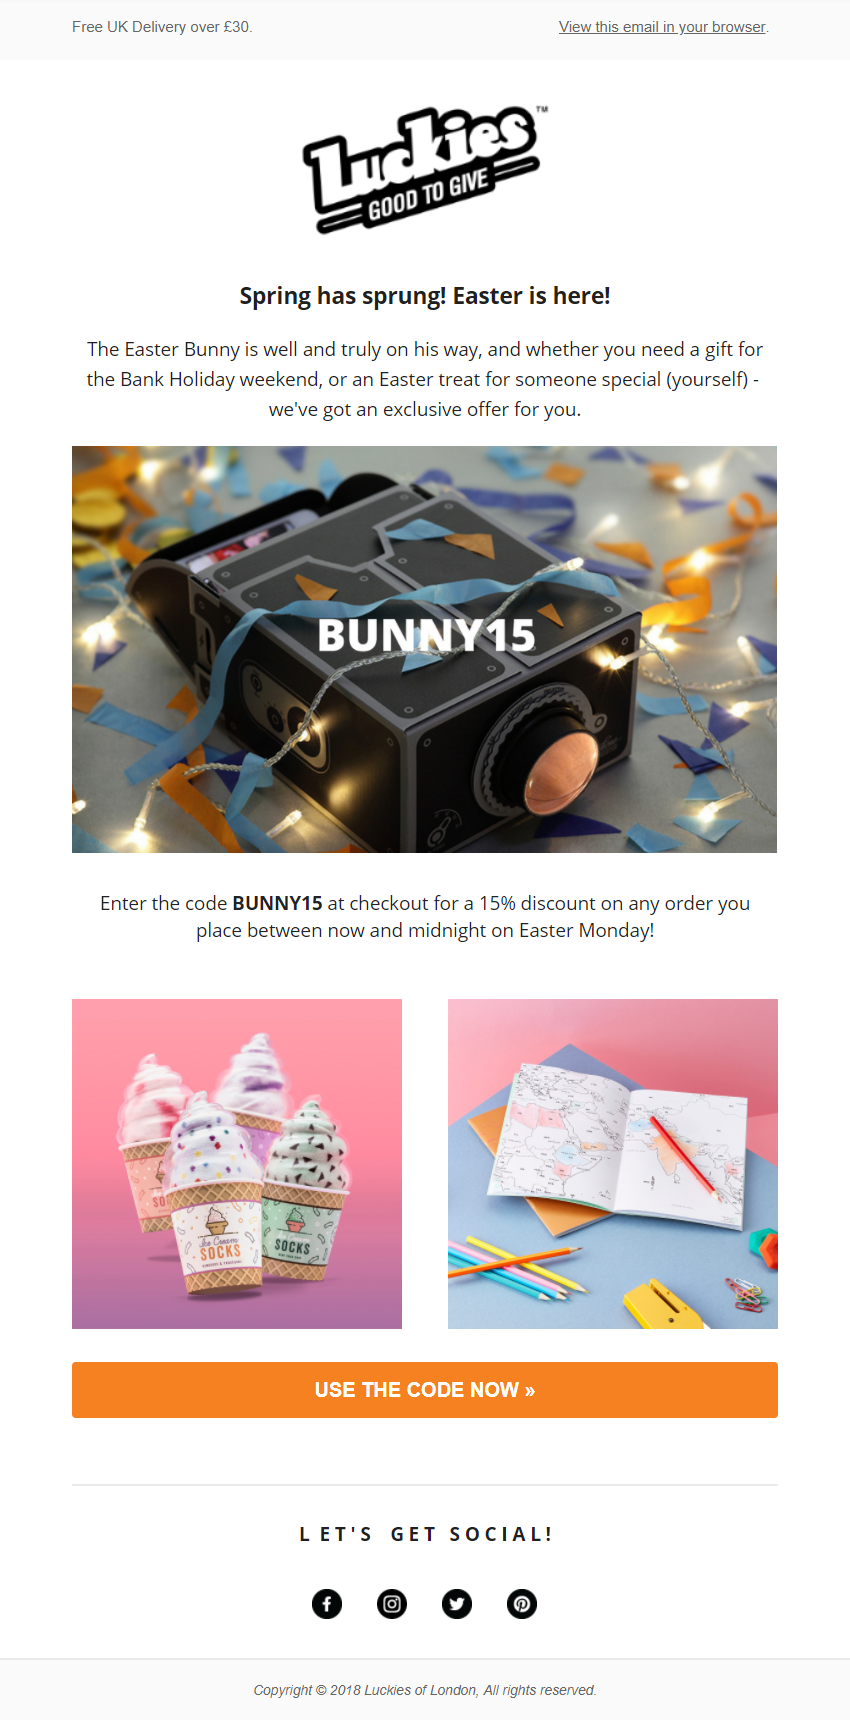 Luckies of london email with discount coupon code for easter luckies of london email with discount coupon code for easter emailmarketing email marketing negle Choice Image